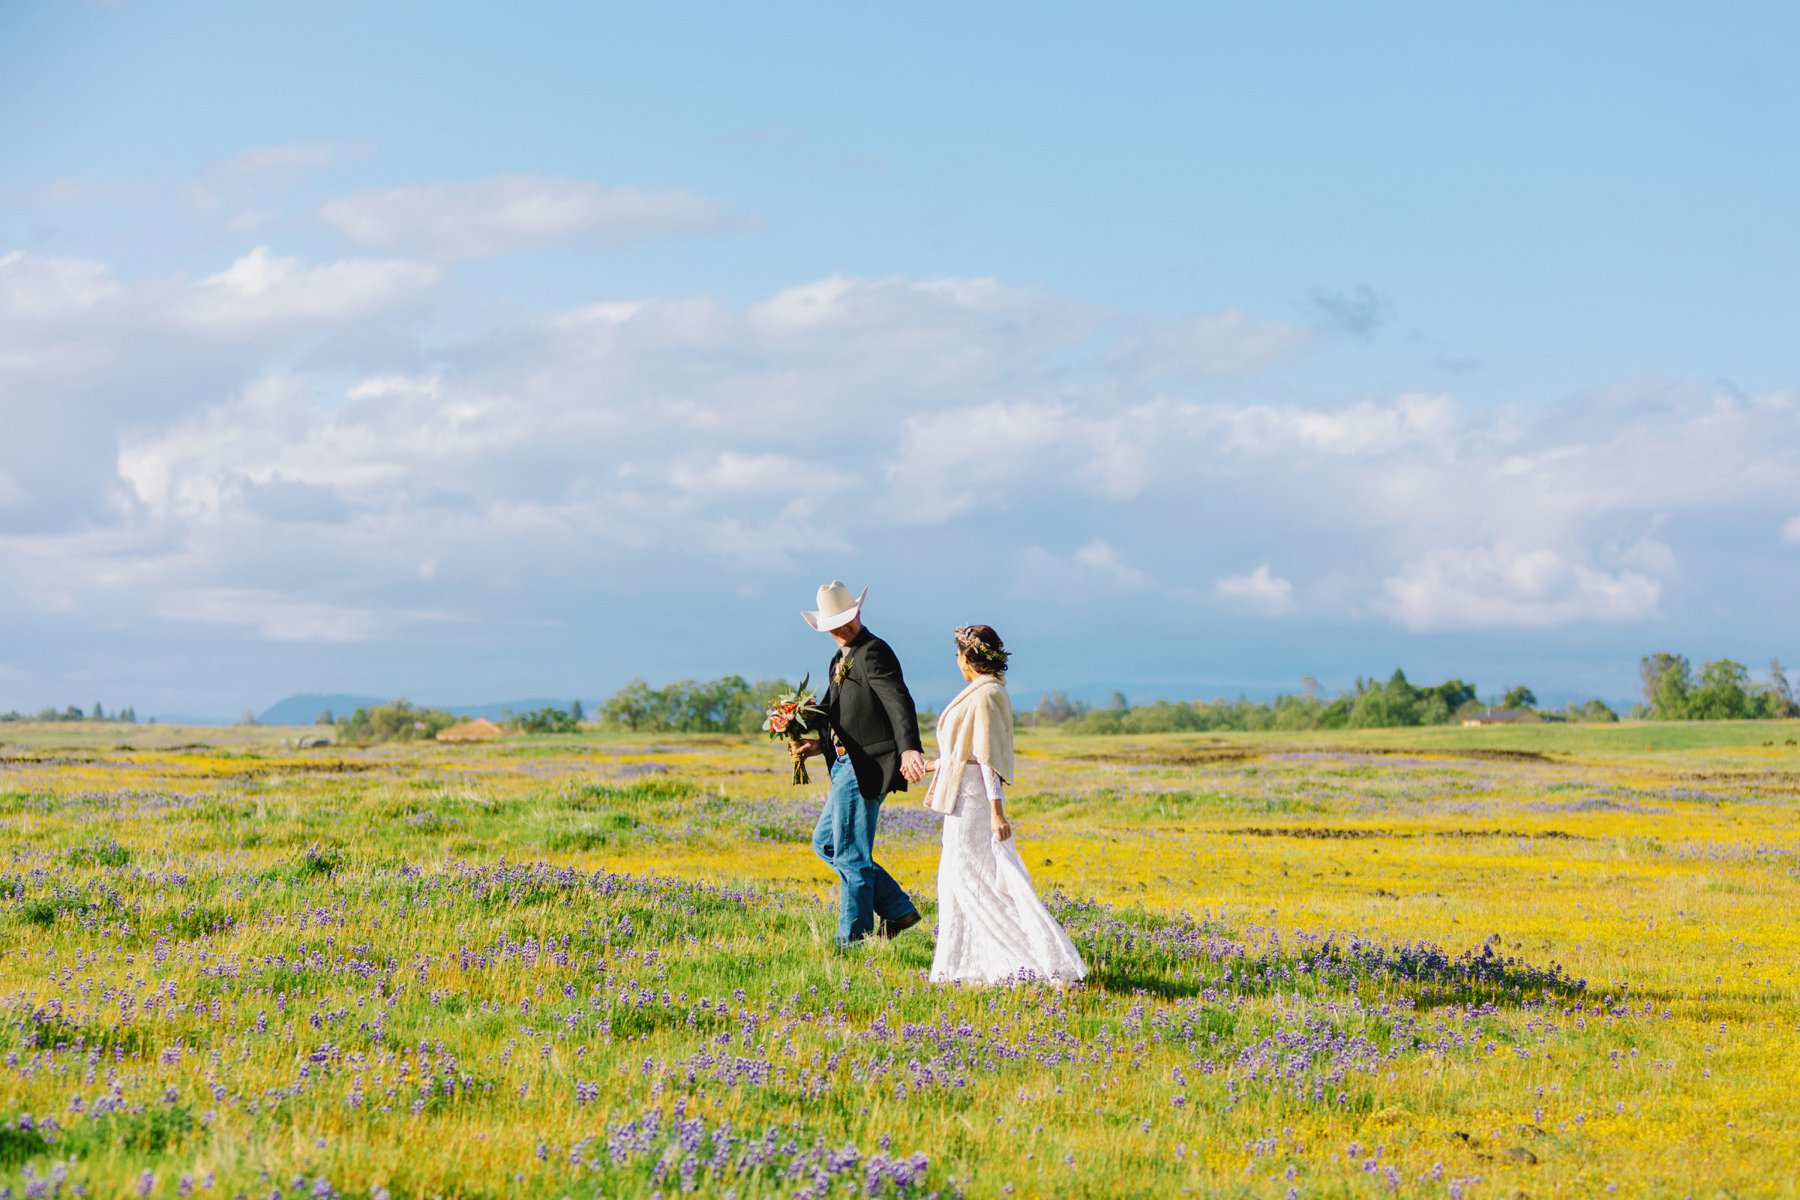 Cherokee / Oregon Gulch California // Cowboy wedding in northern california in open fields of flowers under an oak tree // Photography by Diana Elizabeth Photography www.dianaelizabeth.com